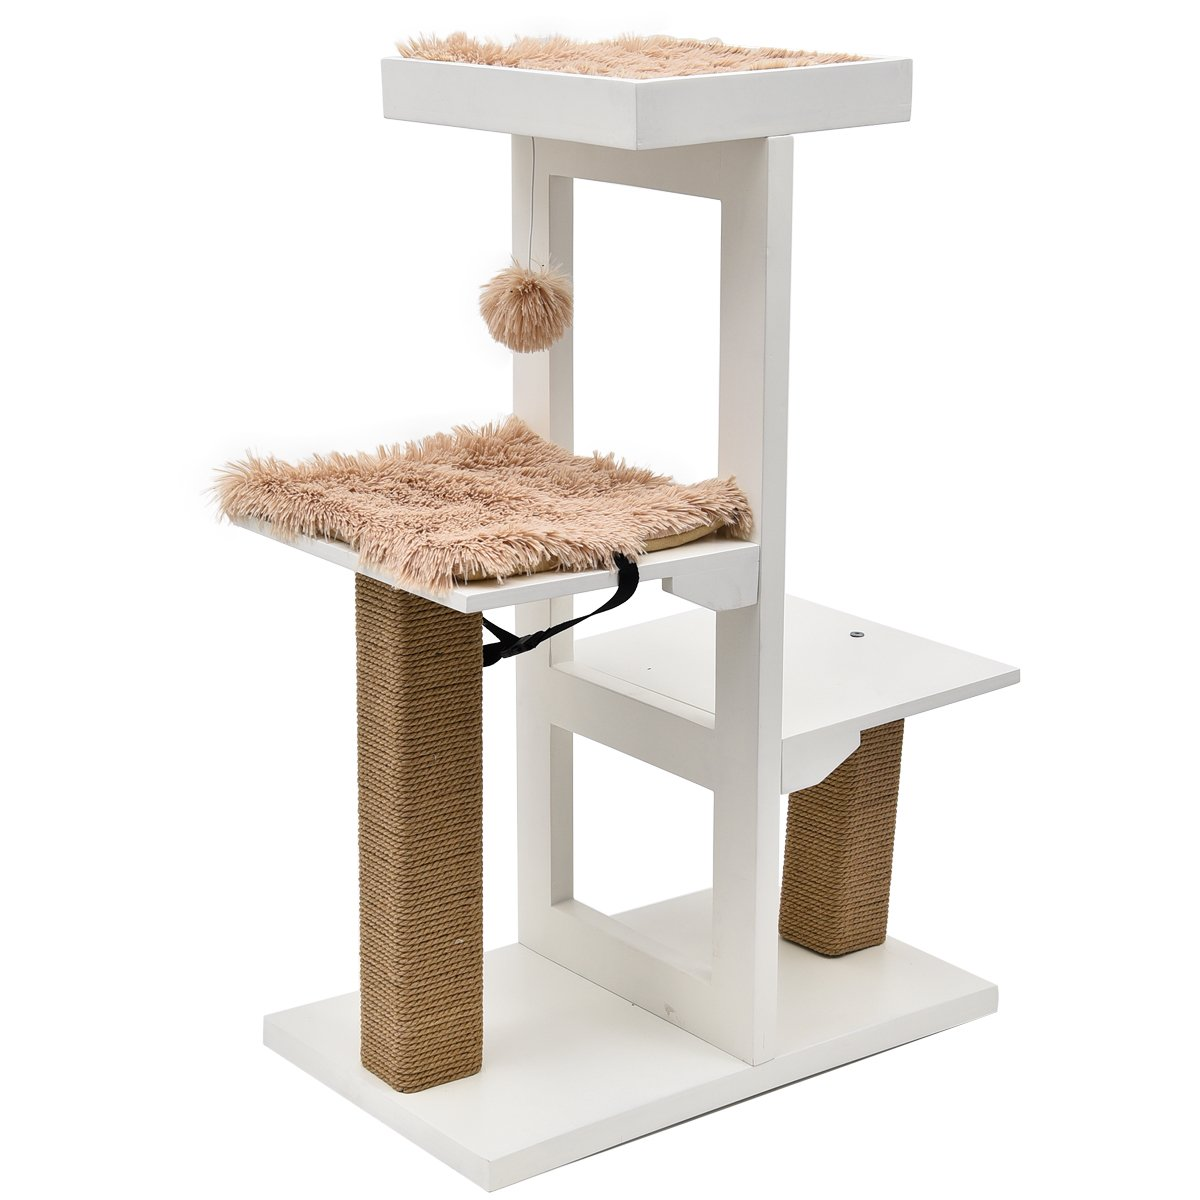 Amazon com pawz road modern cat tree with cat scratching post and hanging ball is great for cat and kitten to play and rest pet supplies